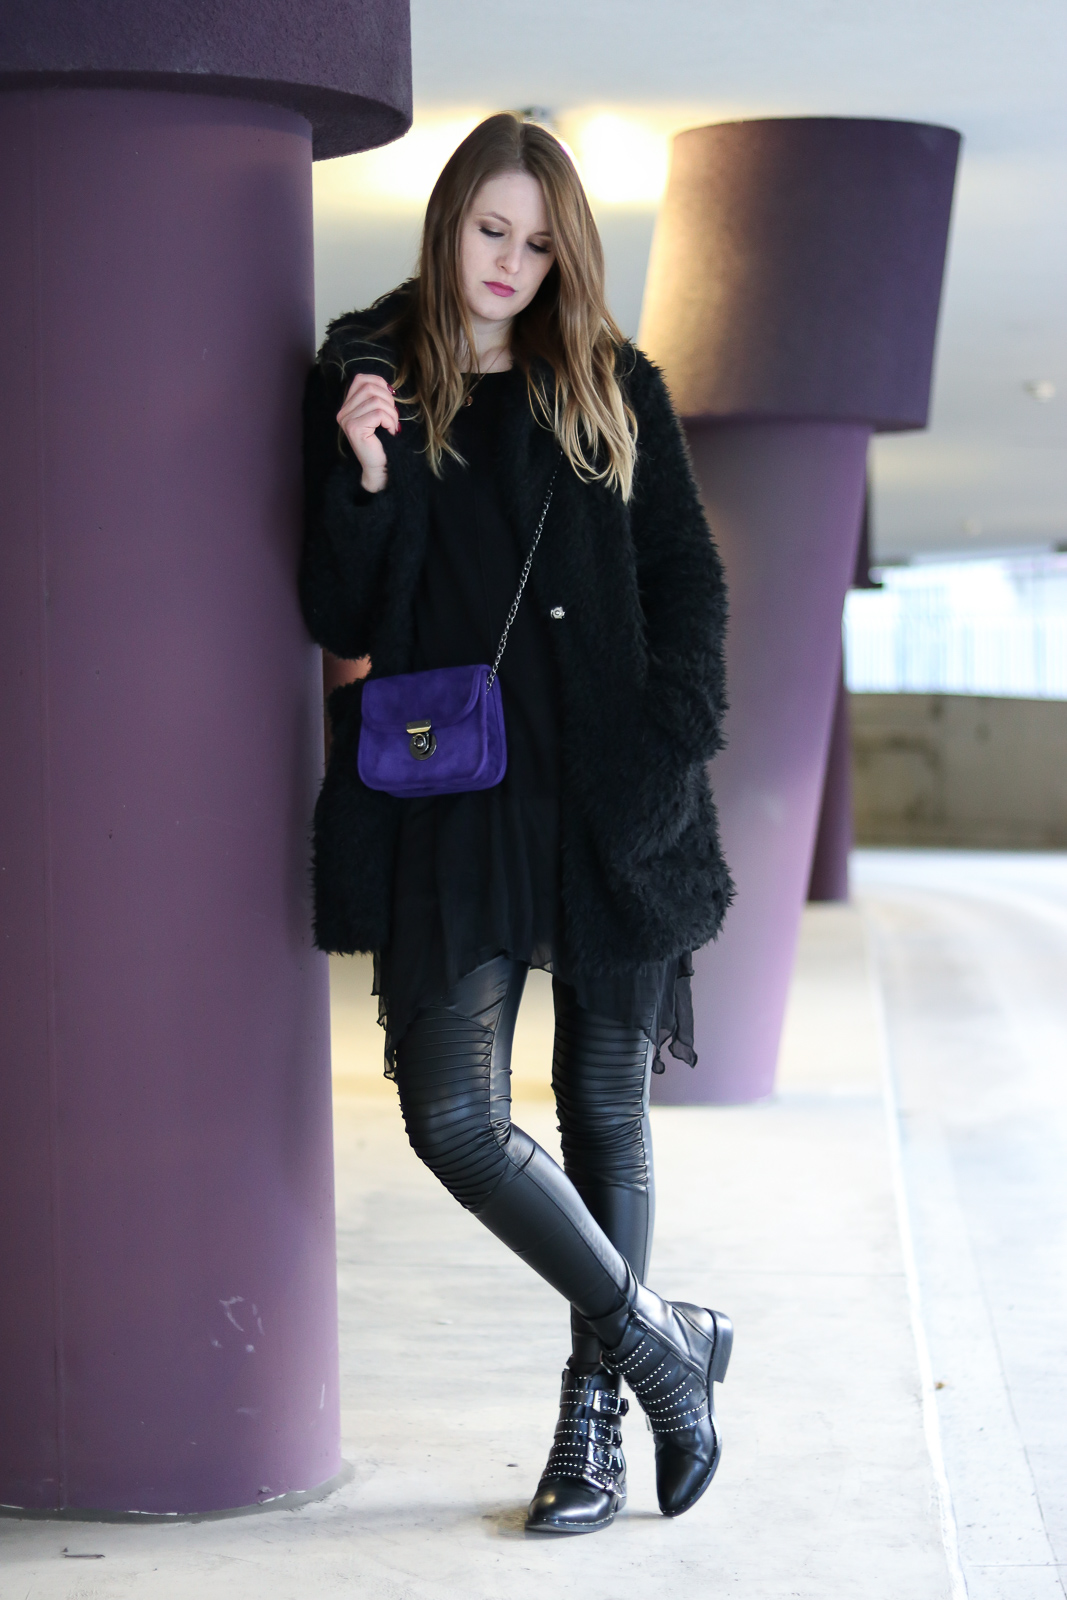 All Black trifft auf Ultra Violet - Outfit mit der Trendfarbe des Jahres - Ultra Violet kombinieren - Outfit mit Lederleggings Teddy Coat und Boots - Ultra Violet Kombination - Trendfarbe kombinieren - All Black Look - Fashionladyloves by Tamara Wagner - Fashion Blog - Mode Bloggerin aus Graz Österreich